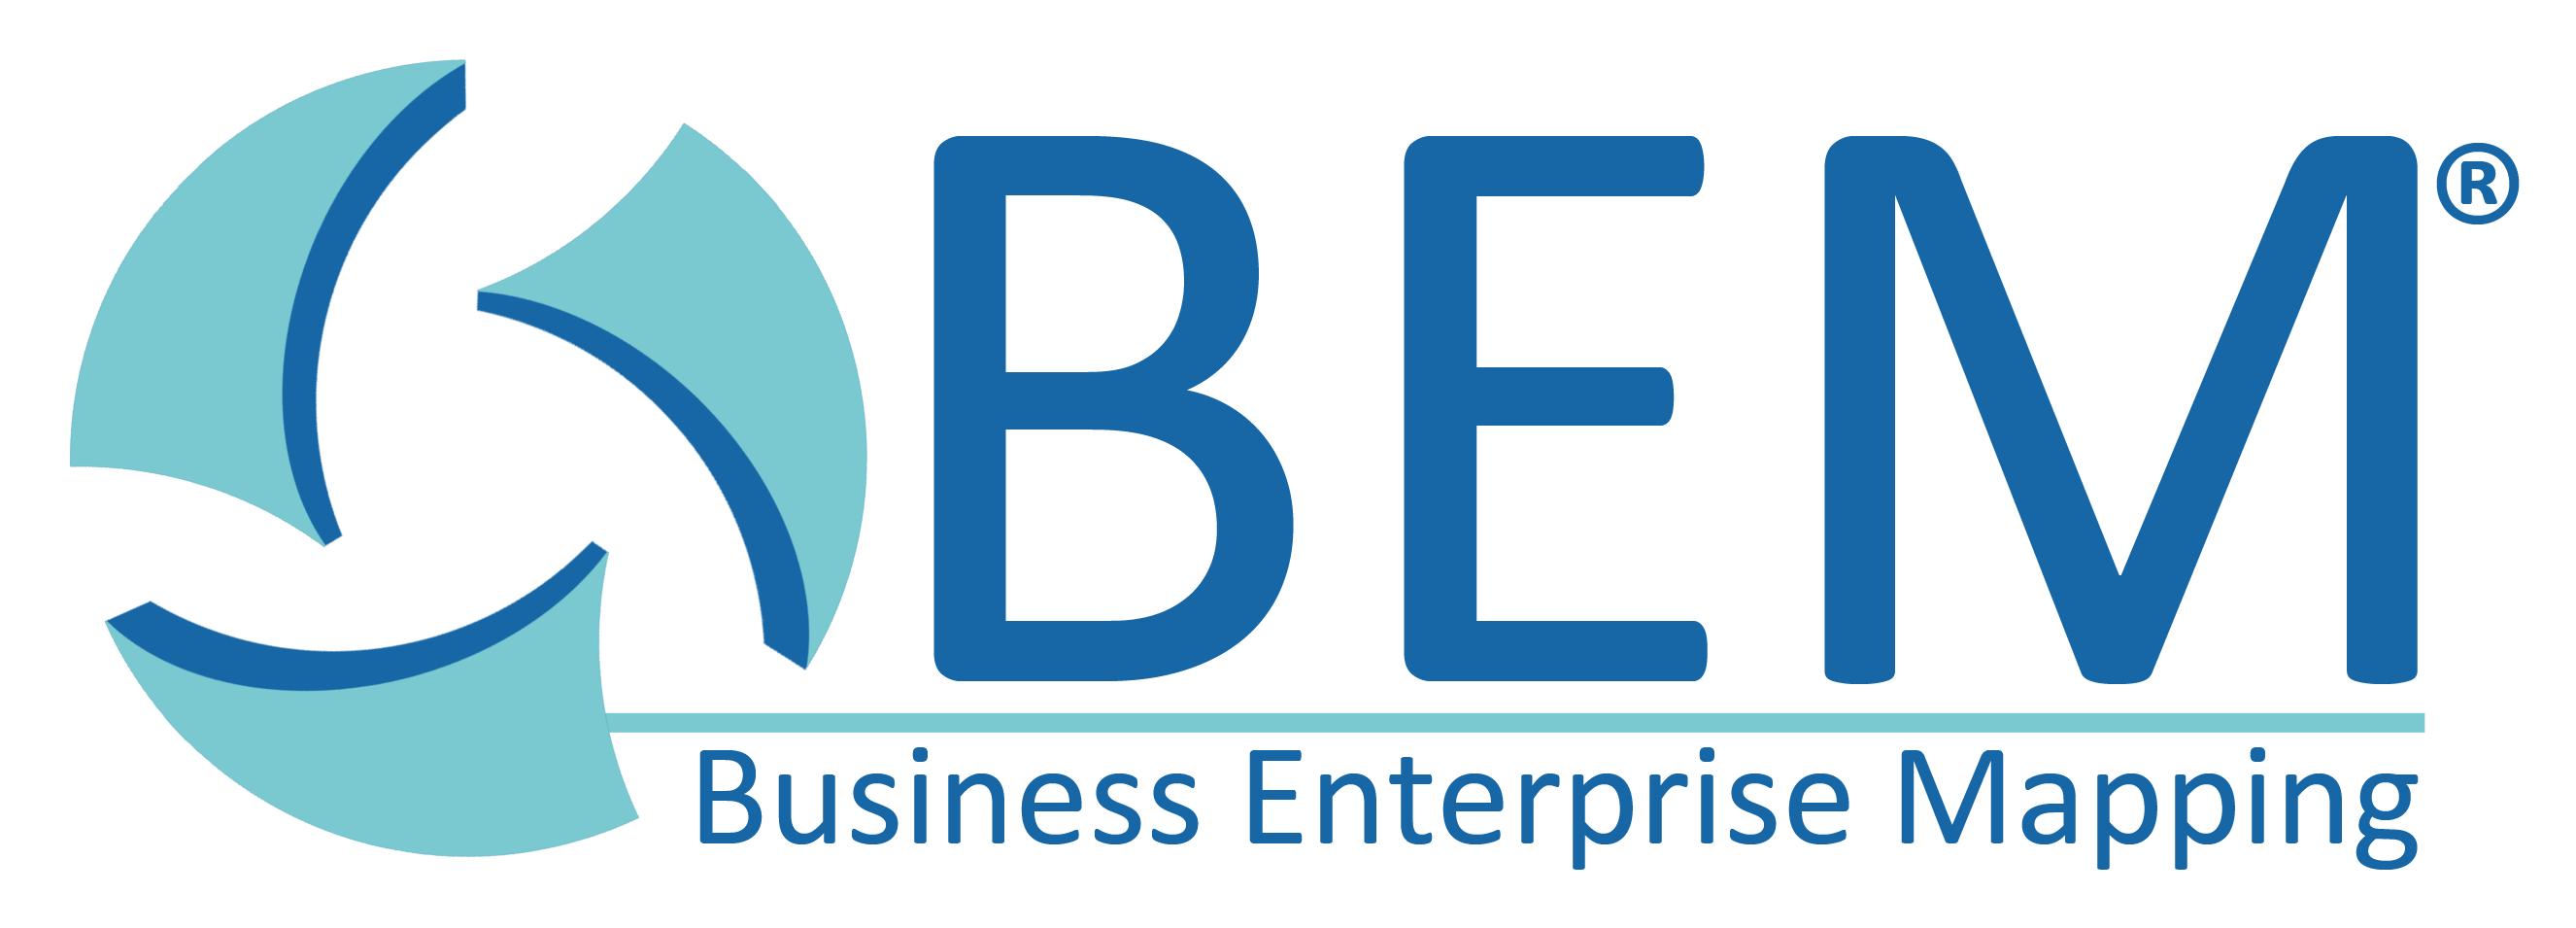 Business Enterprise Mapping Shares the Secret to Better Business Performance